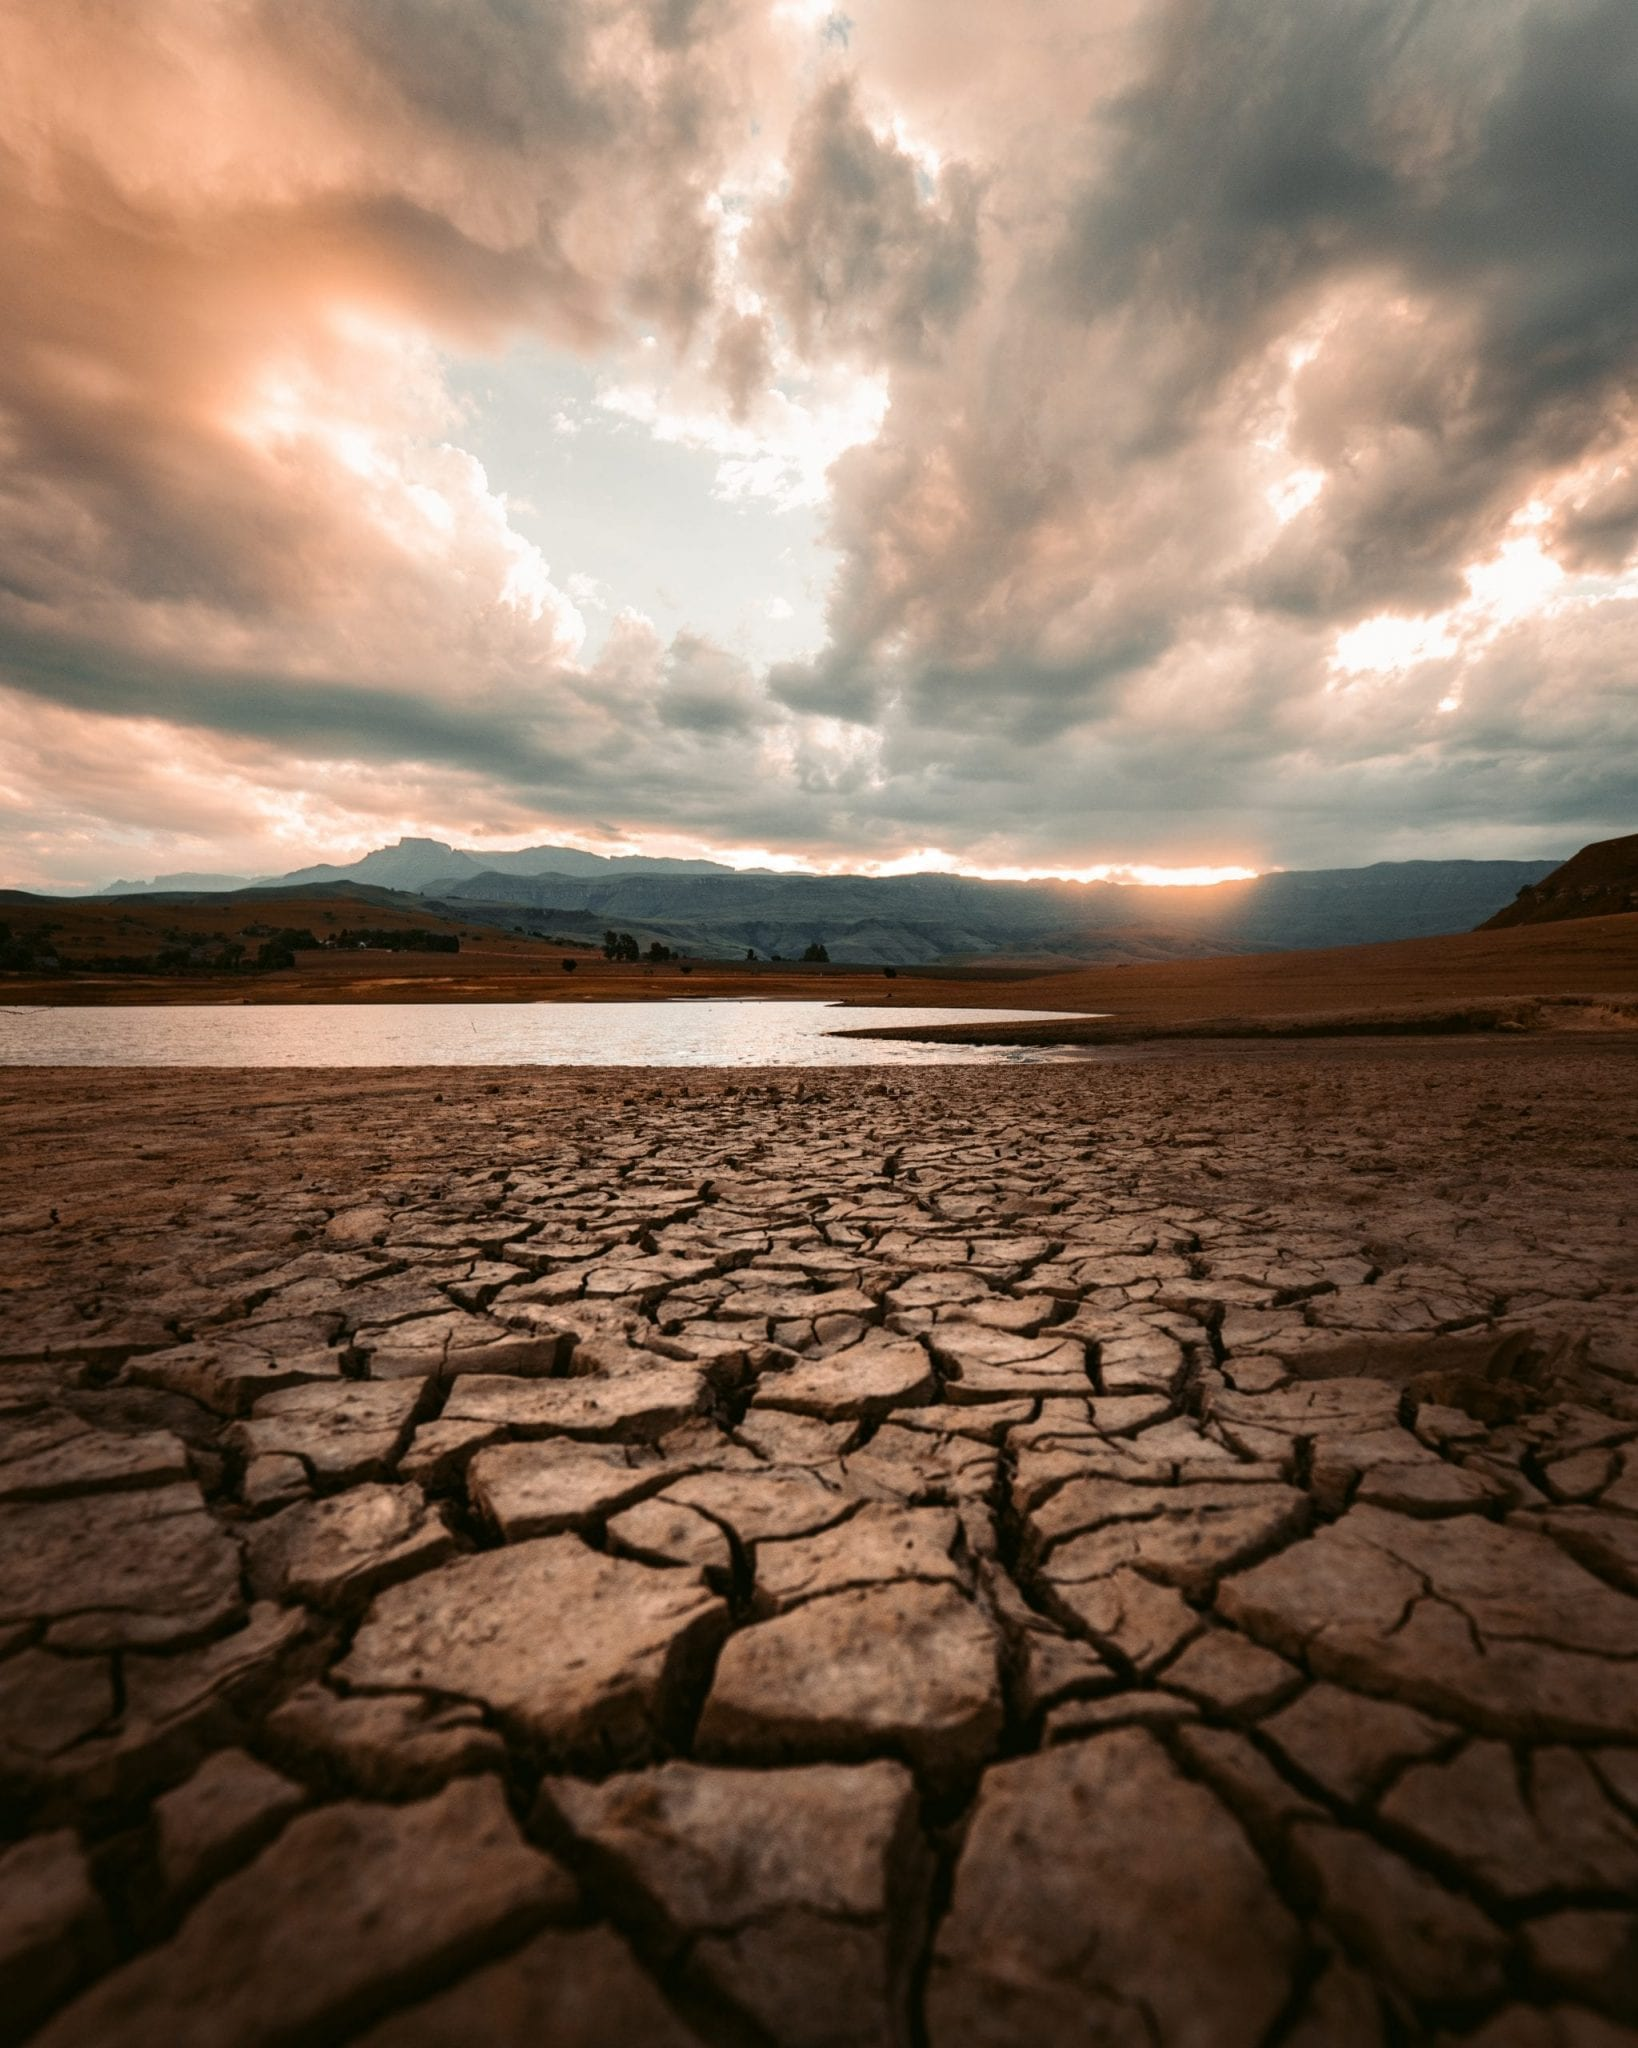 low reservoir and drought